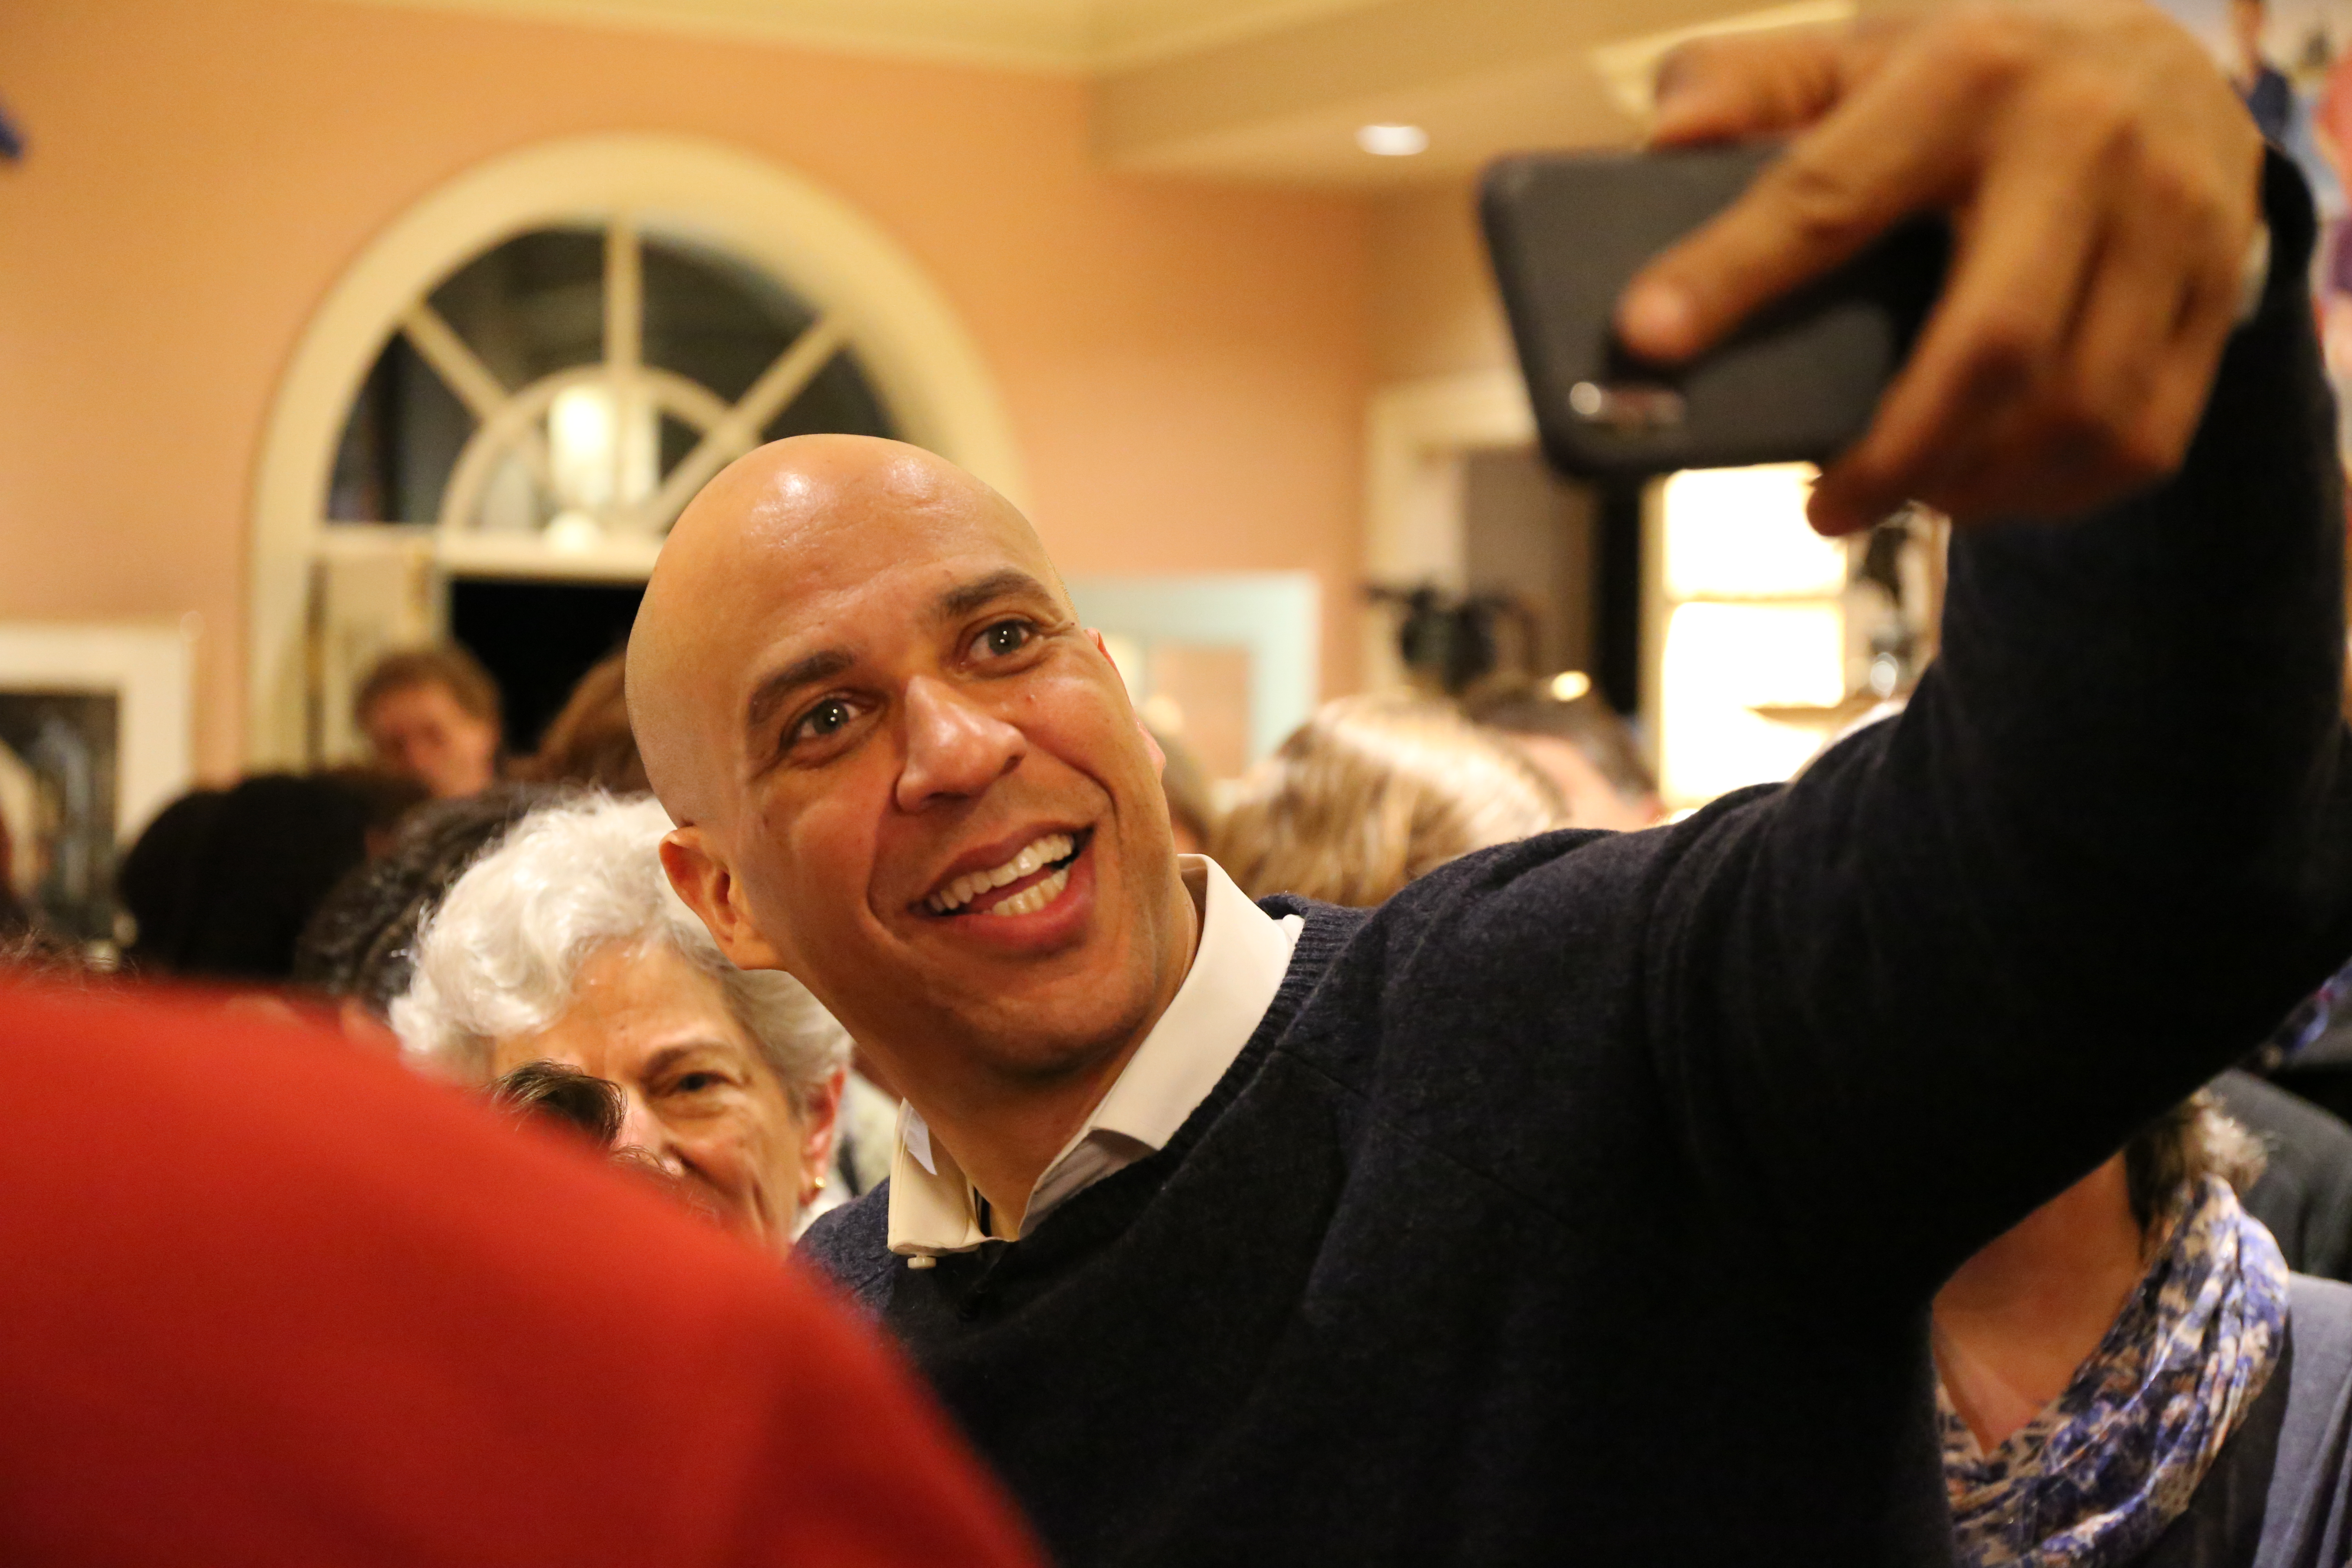 Senator Cory Booker of New Jersey takes selfies with voters at a New Hampshire house party.